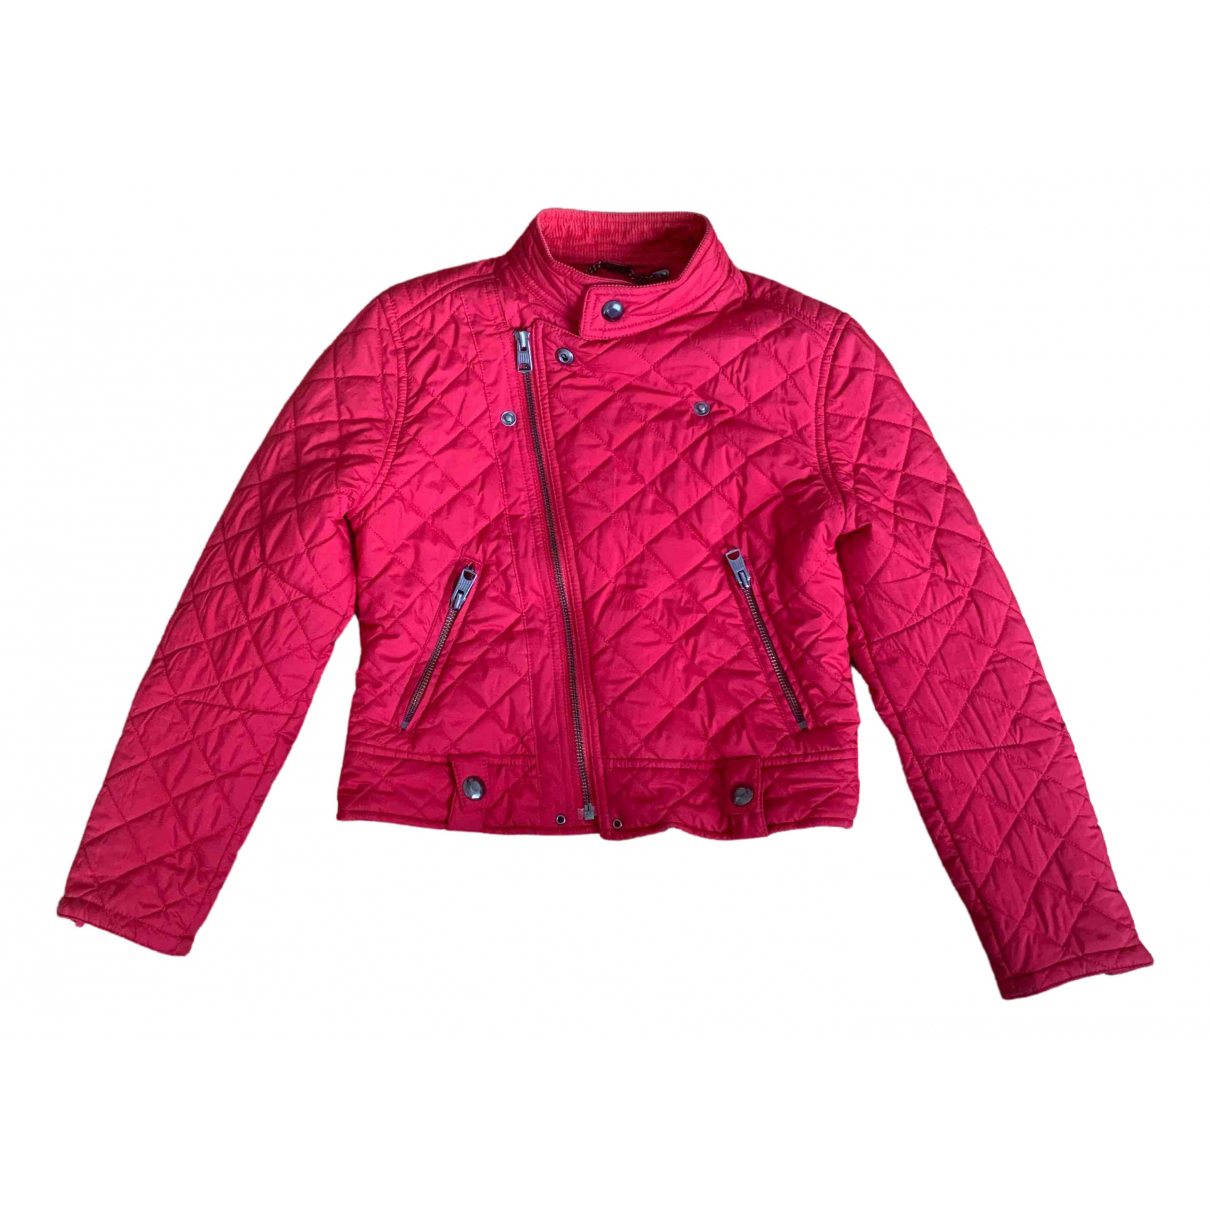 Ralph Lauren \N Pink jacket & coat for Kids 10 years - until 56 inches UK